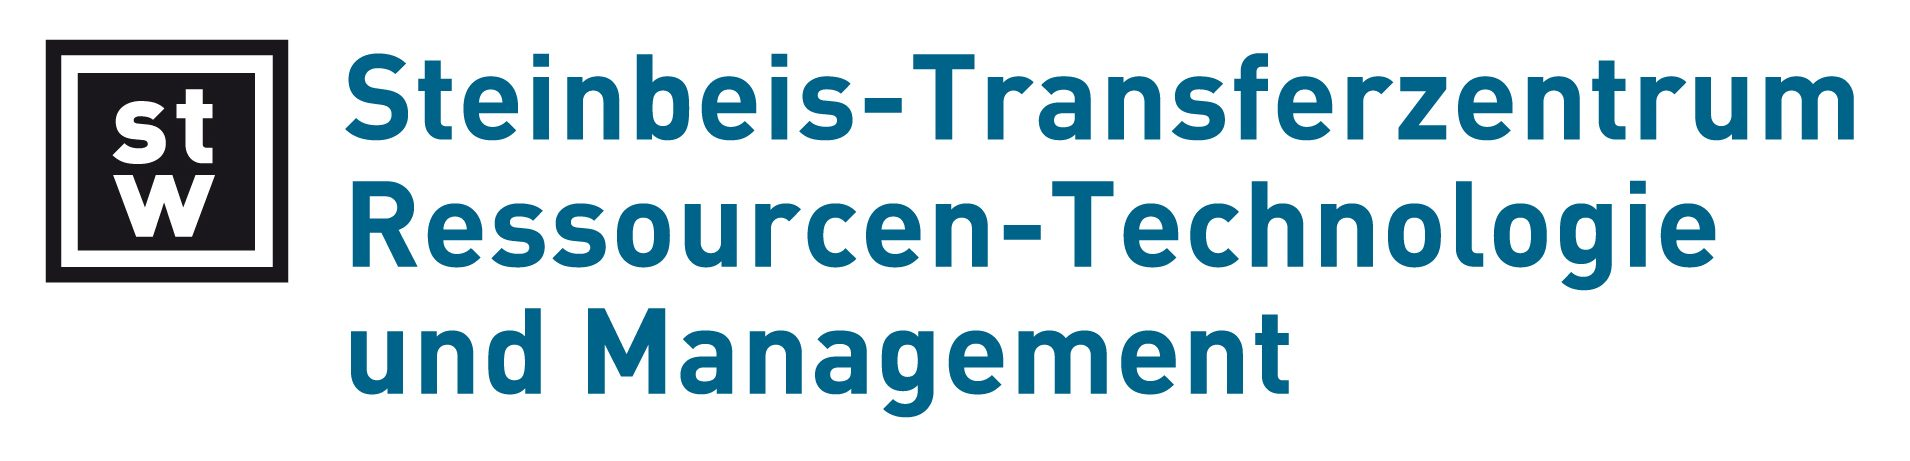 Steinbeis-Transferzentrum Ressourcen-Technologie und Management